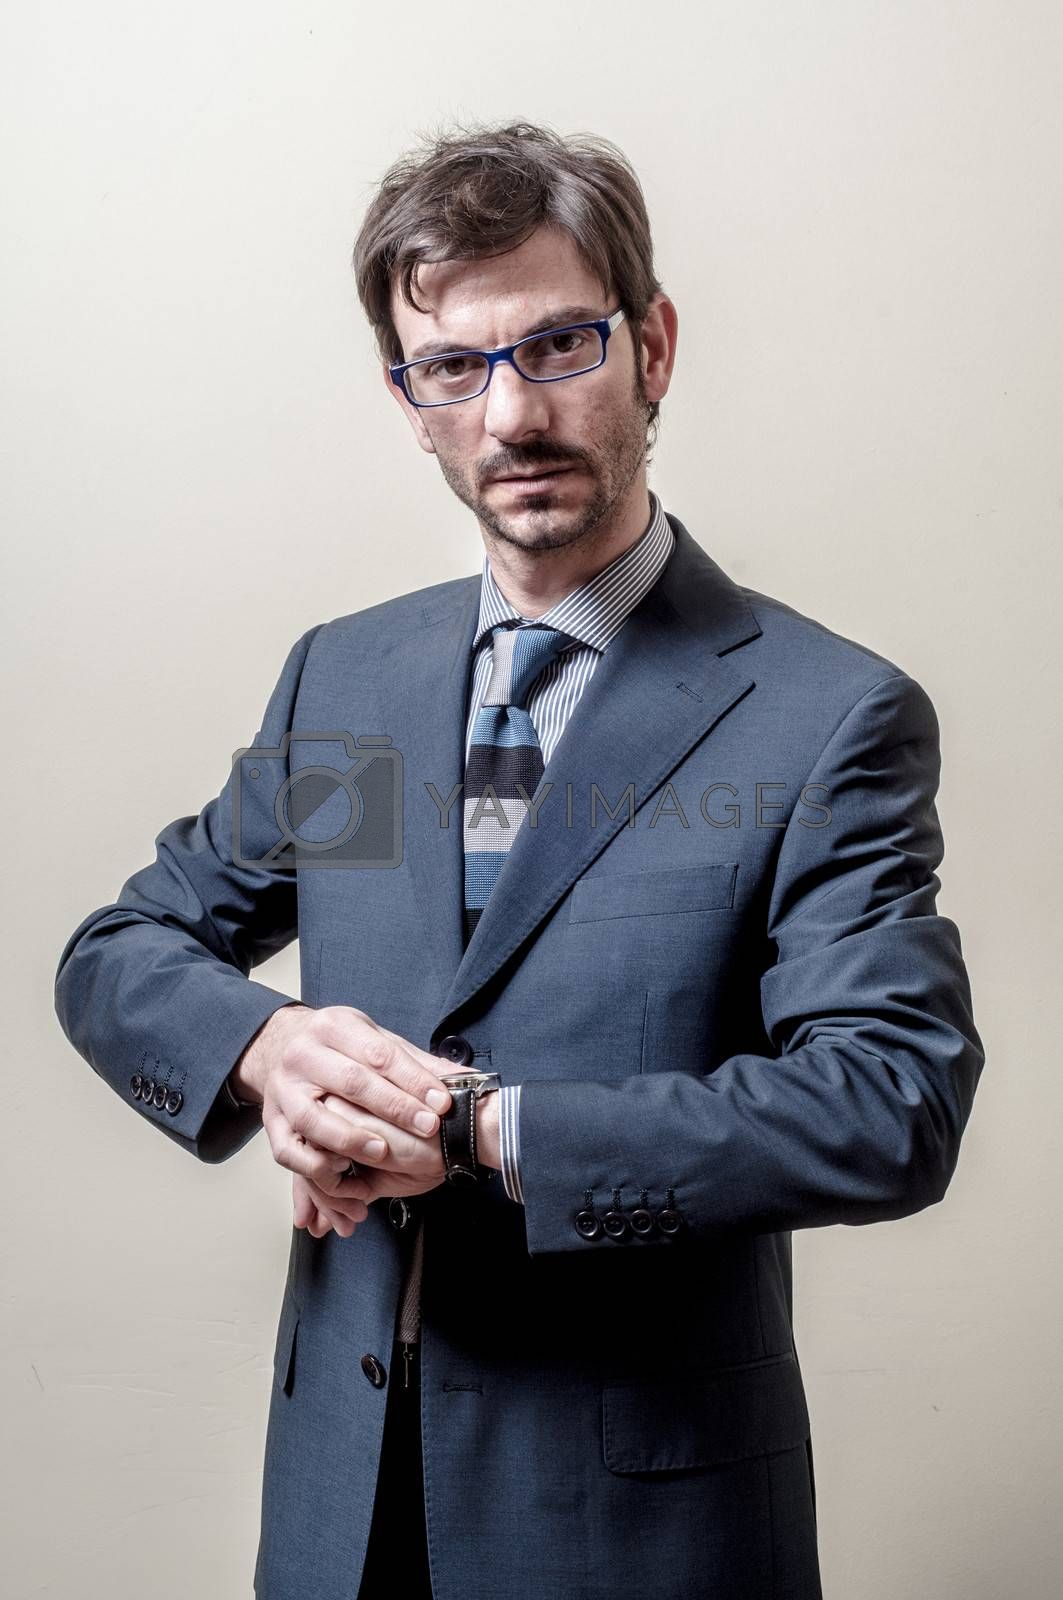 Royalty free image of businessman looking wristwatch by peus